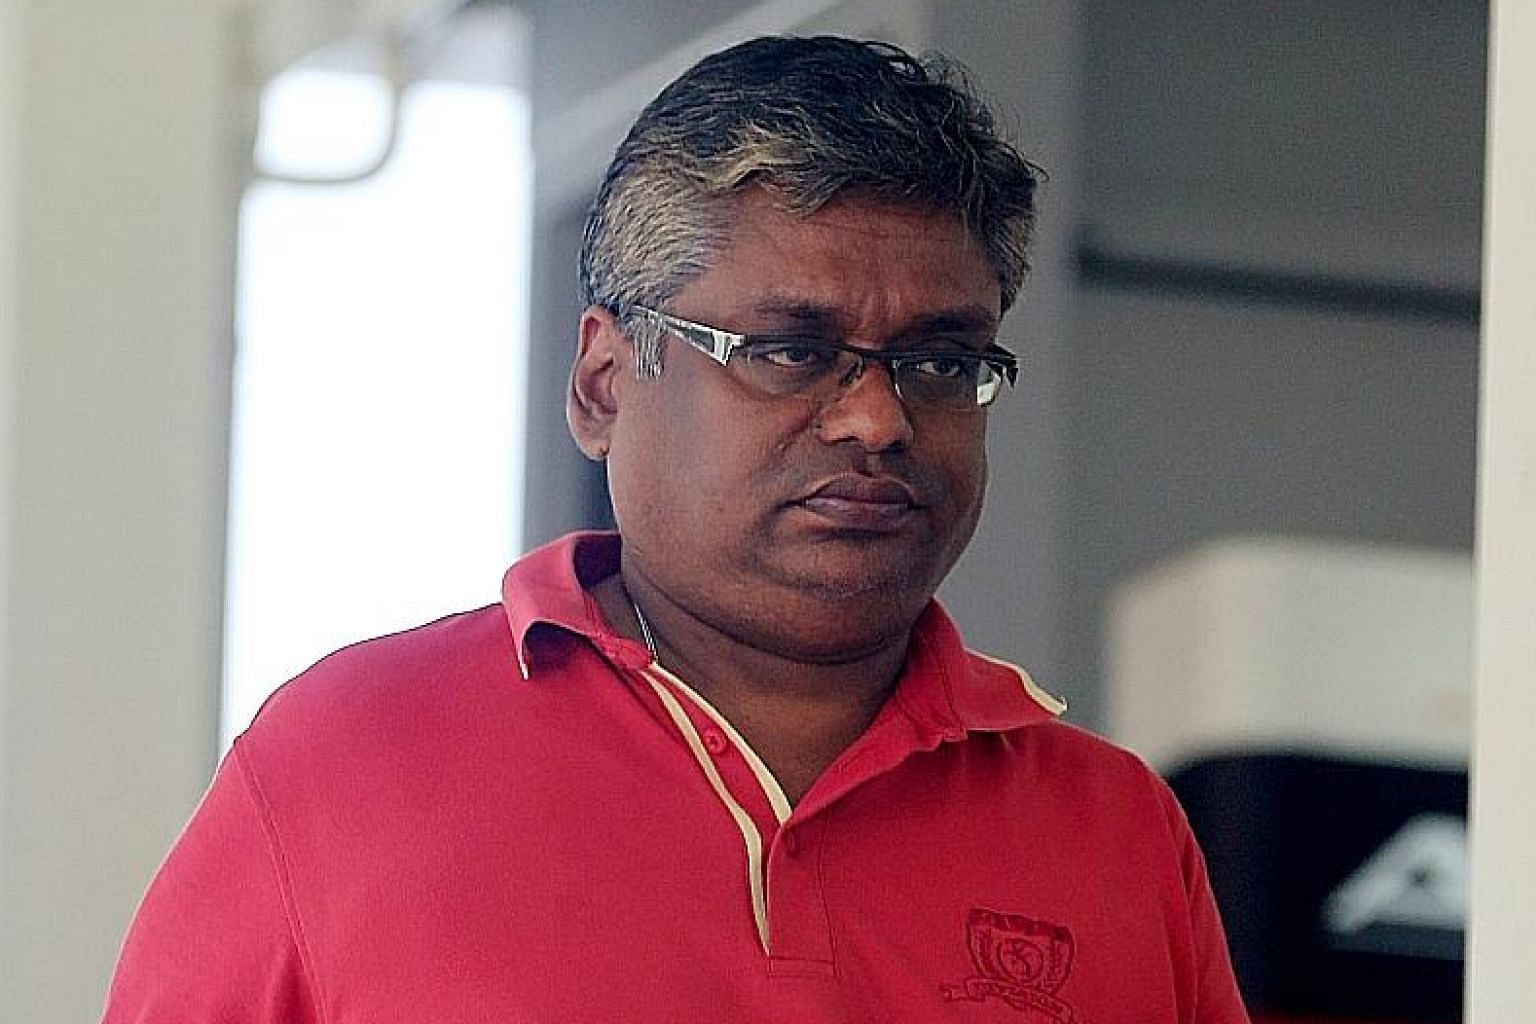 Eagle Flight Aviation Services owner Jeevan Arumugam (right) is accused of being Rajkumar Padmanthan's co-conspirator, while former RSAF engineer Sung Way Xiong faces one charge of corruption. Former RSAF engineer Rajkumar Padmanthan had business int